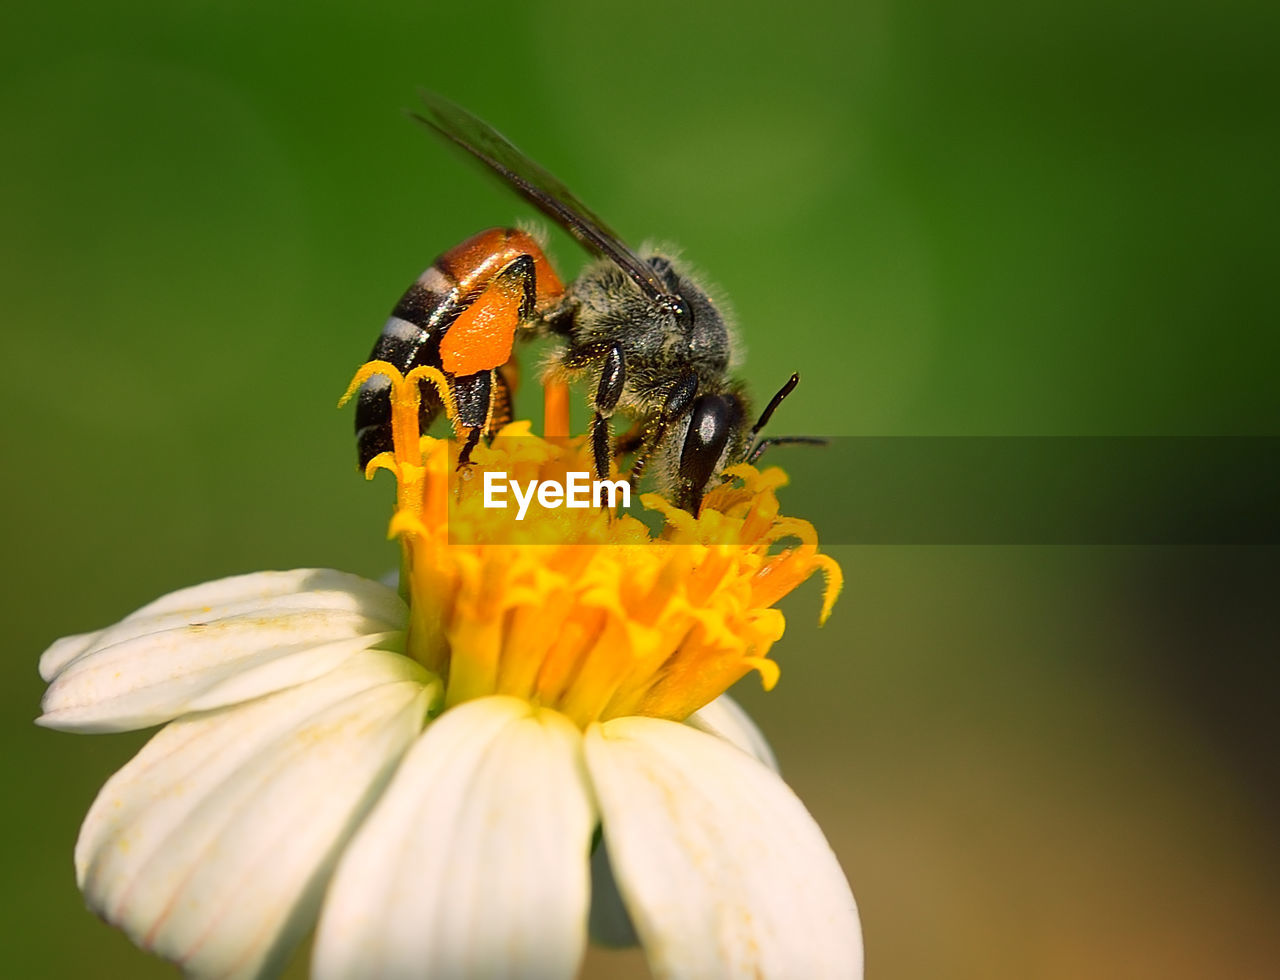 flowering plant, flower, invertebrate, insect, animals in the wild, animal themes, fragility, animal wildlife, flower head, vulnerability, beauty in nature, petal, animal, one animal, freshness, plant, inflorescence, close-up, growth, pollination, yellow, pollen, no people, outdoors, animal wing